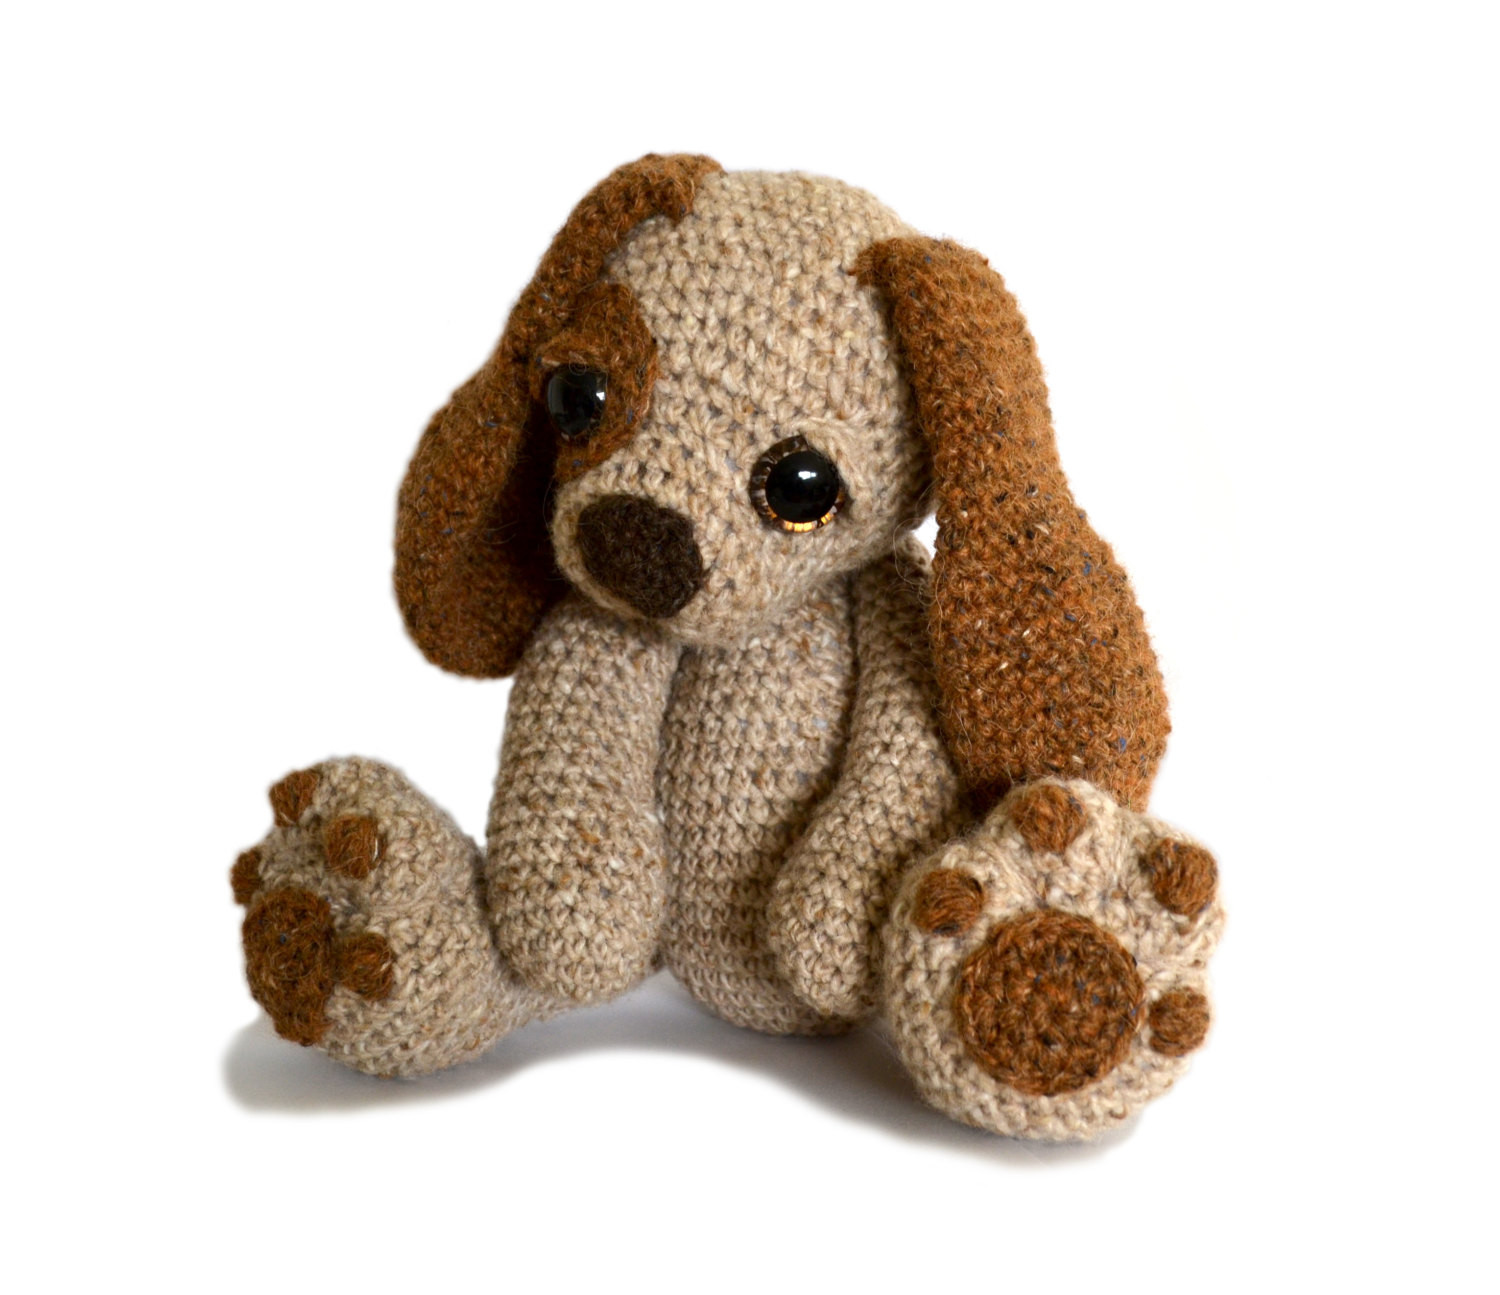 Free Crochet Dog Patterns Inspirational Puppy Dog Amigurumi Crochet Pattern Pdf Instant Download Of Superb 45 Pictures Free Crochet Dog Patterns